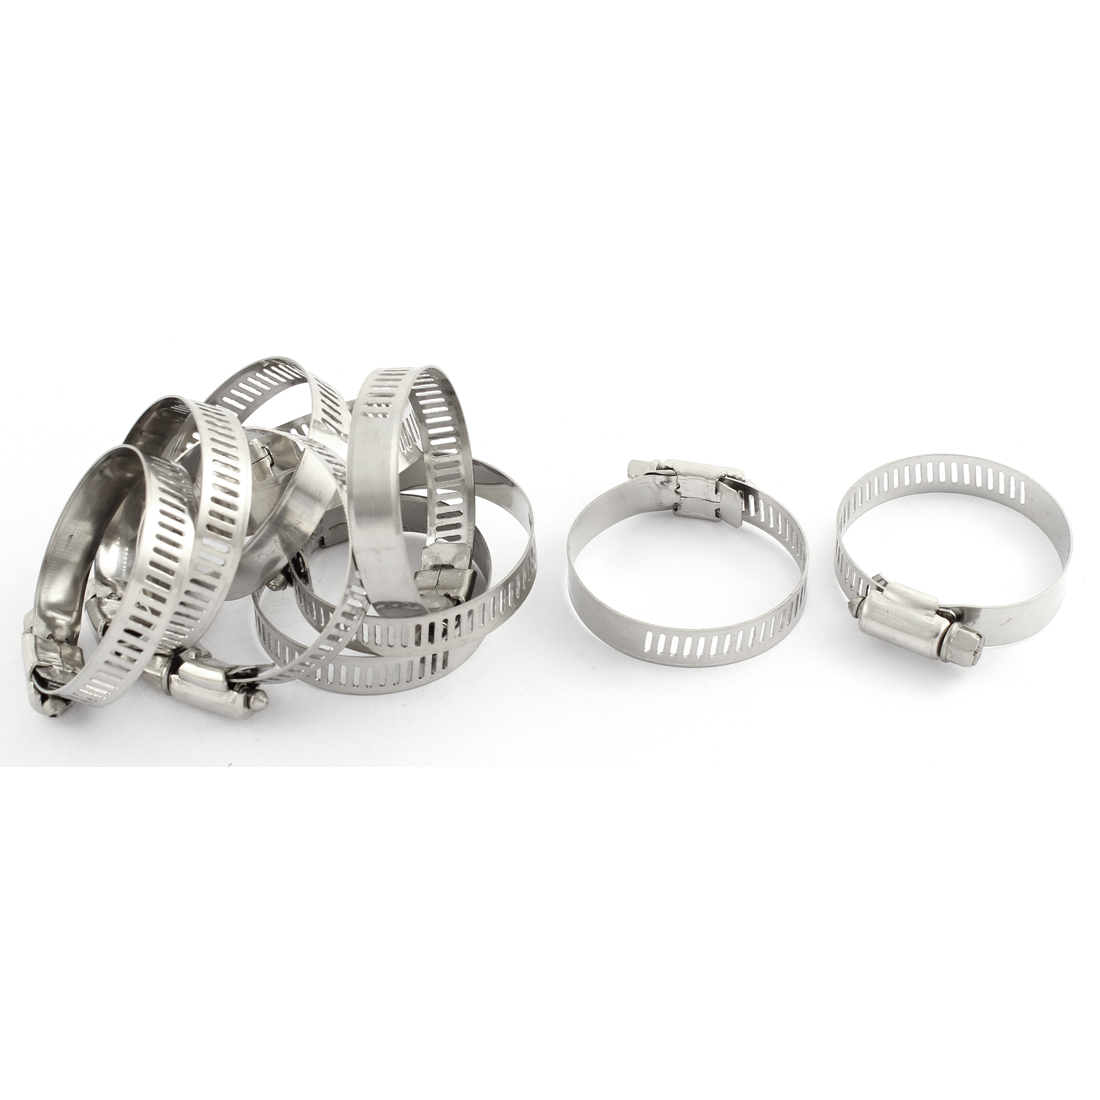 Adjustable 32-44mm Range Band Stainless Steel Wire Pipe Hose Clip Clamp 10 Pcs